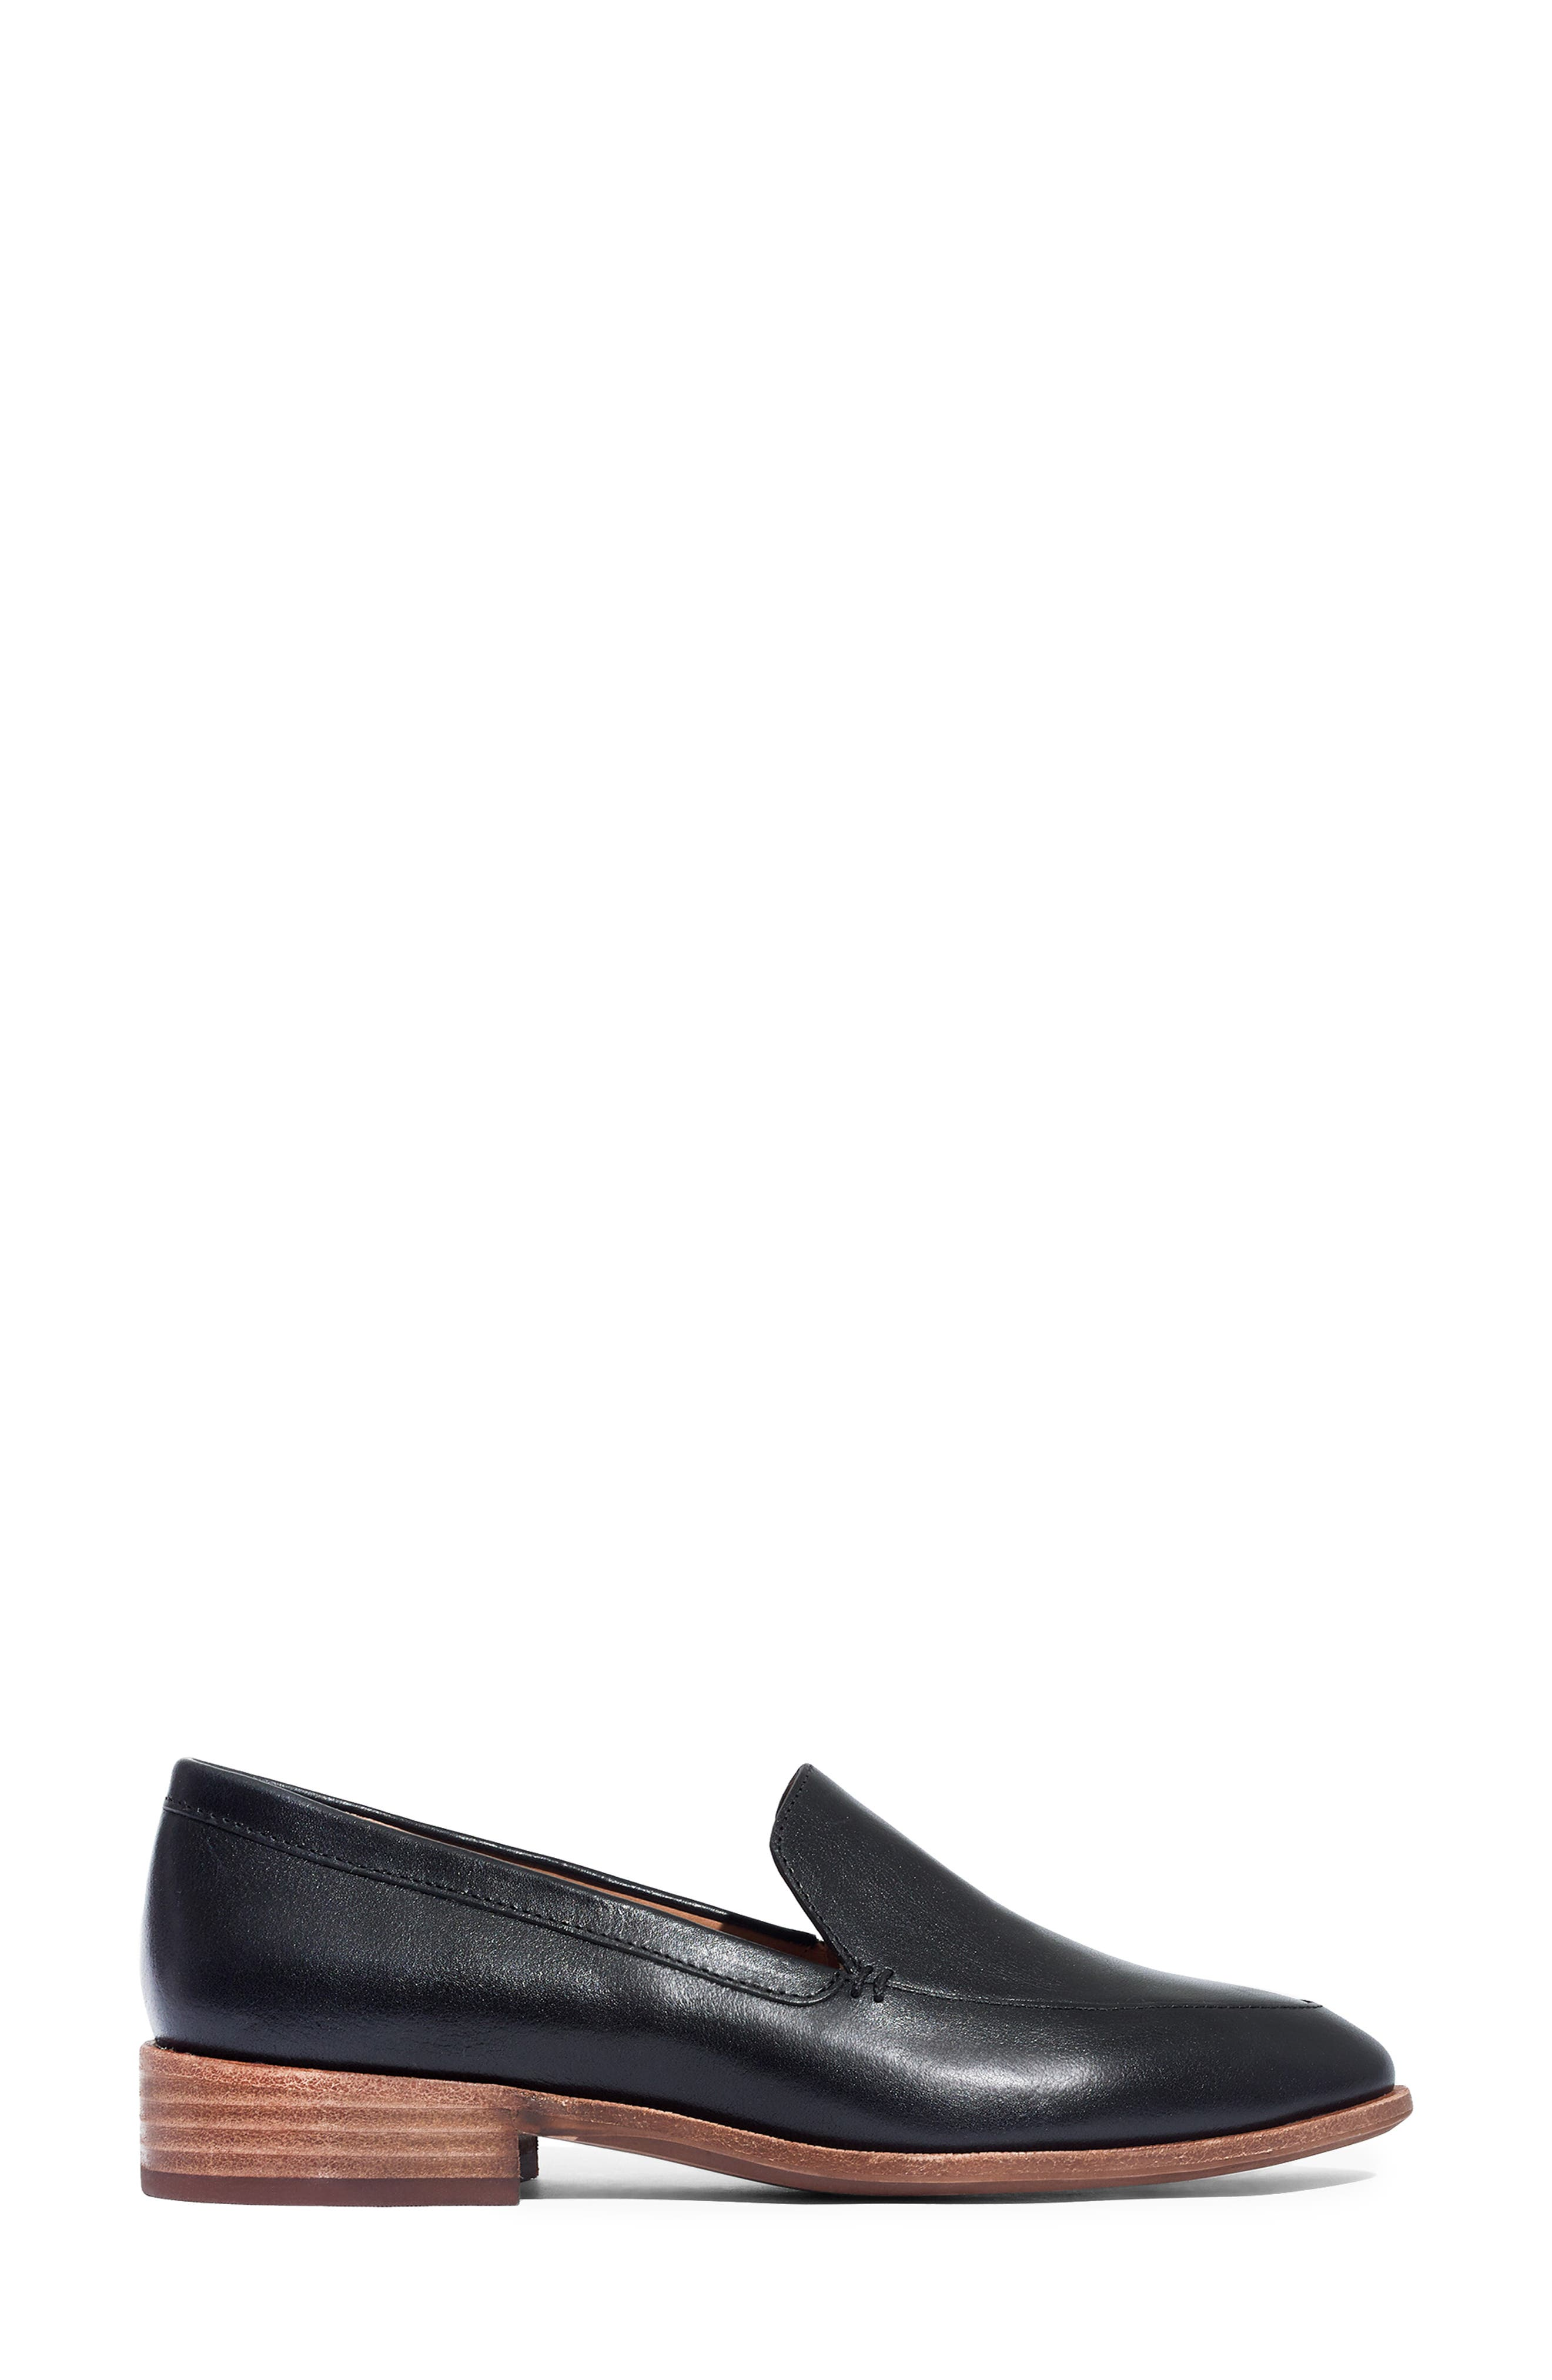 MADEWELL,                             The Frances Loafer,                             Alternate thumbnail 3, color,                             TRUE BLACK LEATHER